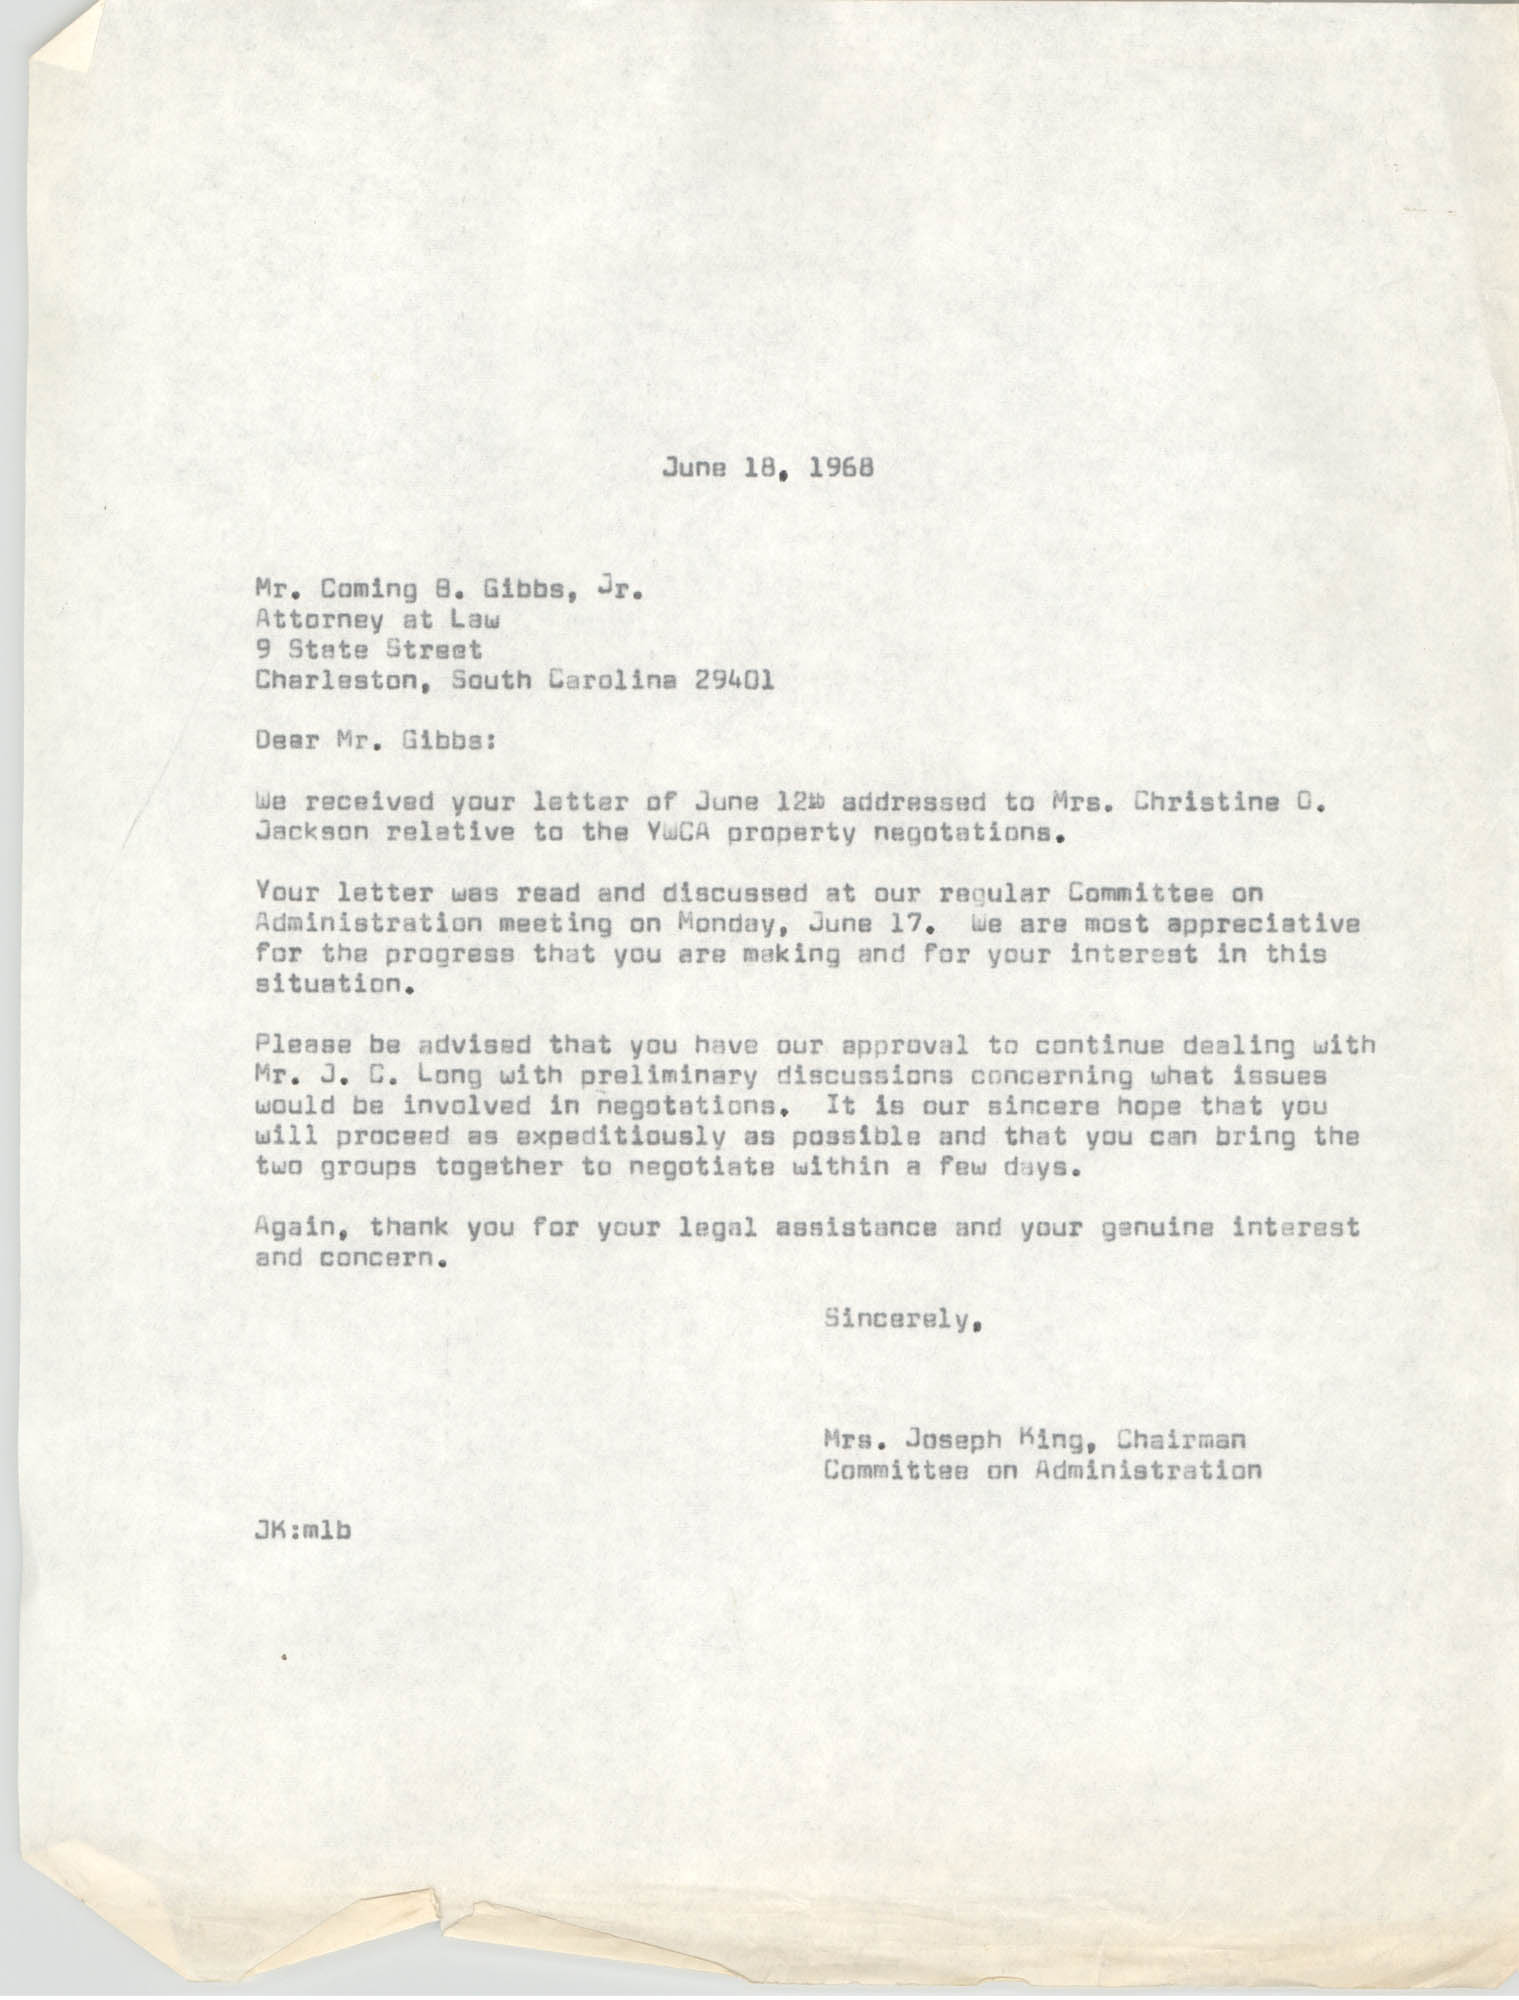 Letter from Mrs. Joseph King to Coming B. Gibbs, Jr., June 18, 1968